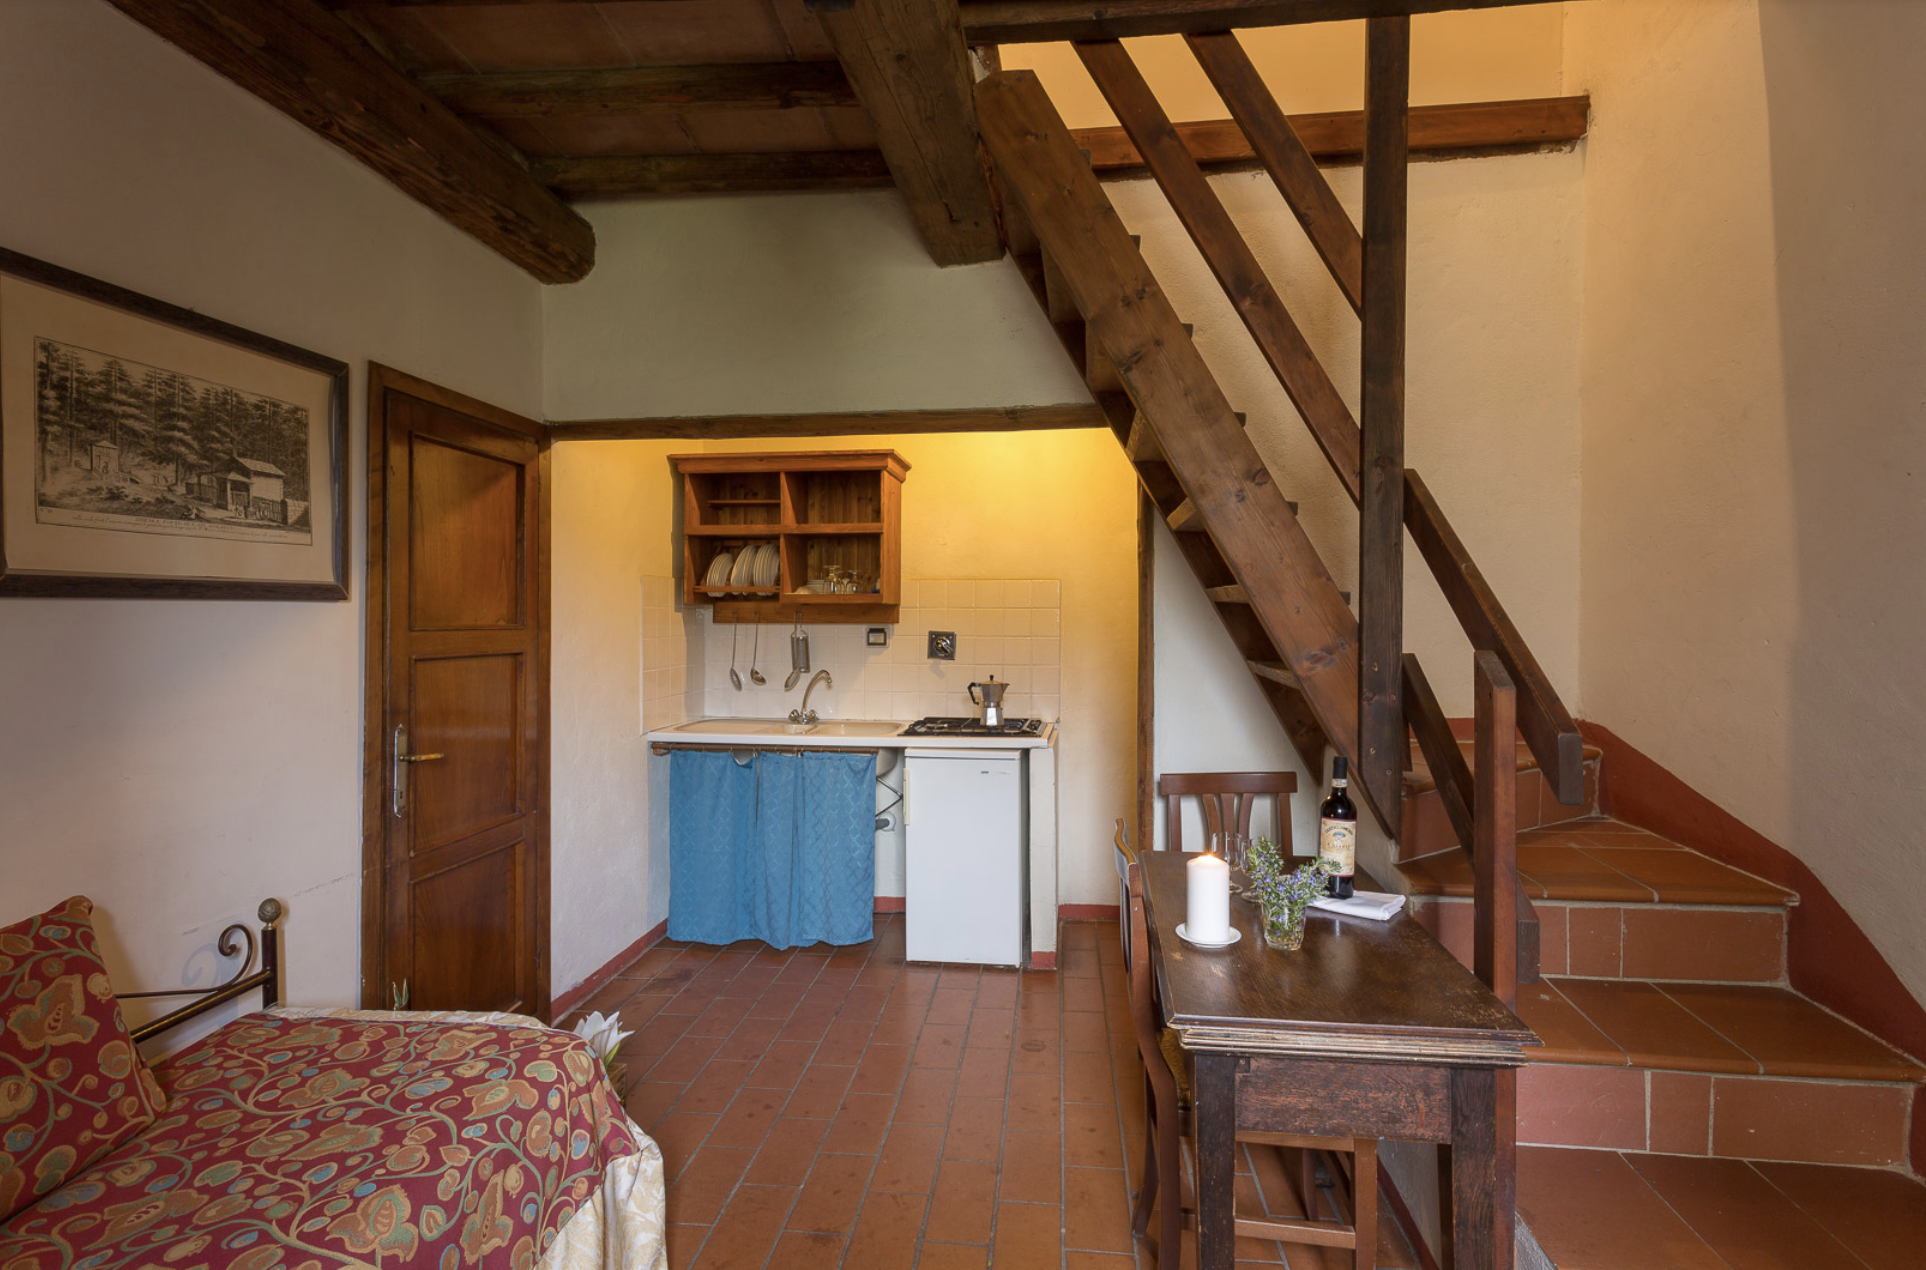 Borghetto 3 (1 bedroom apartment sleeps up to 3 guests)